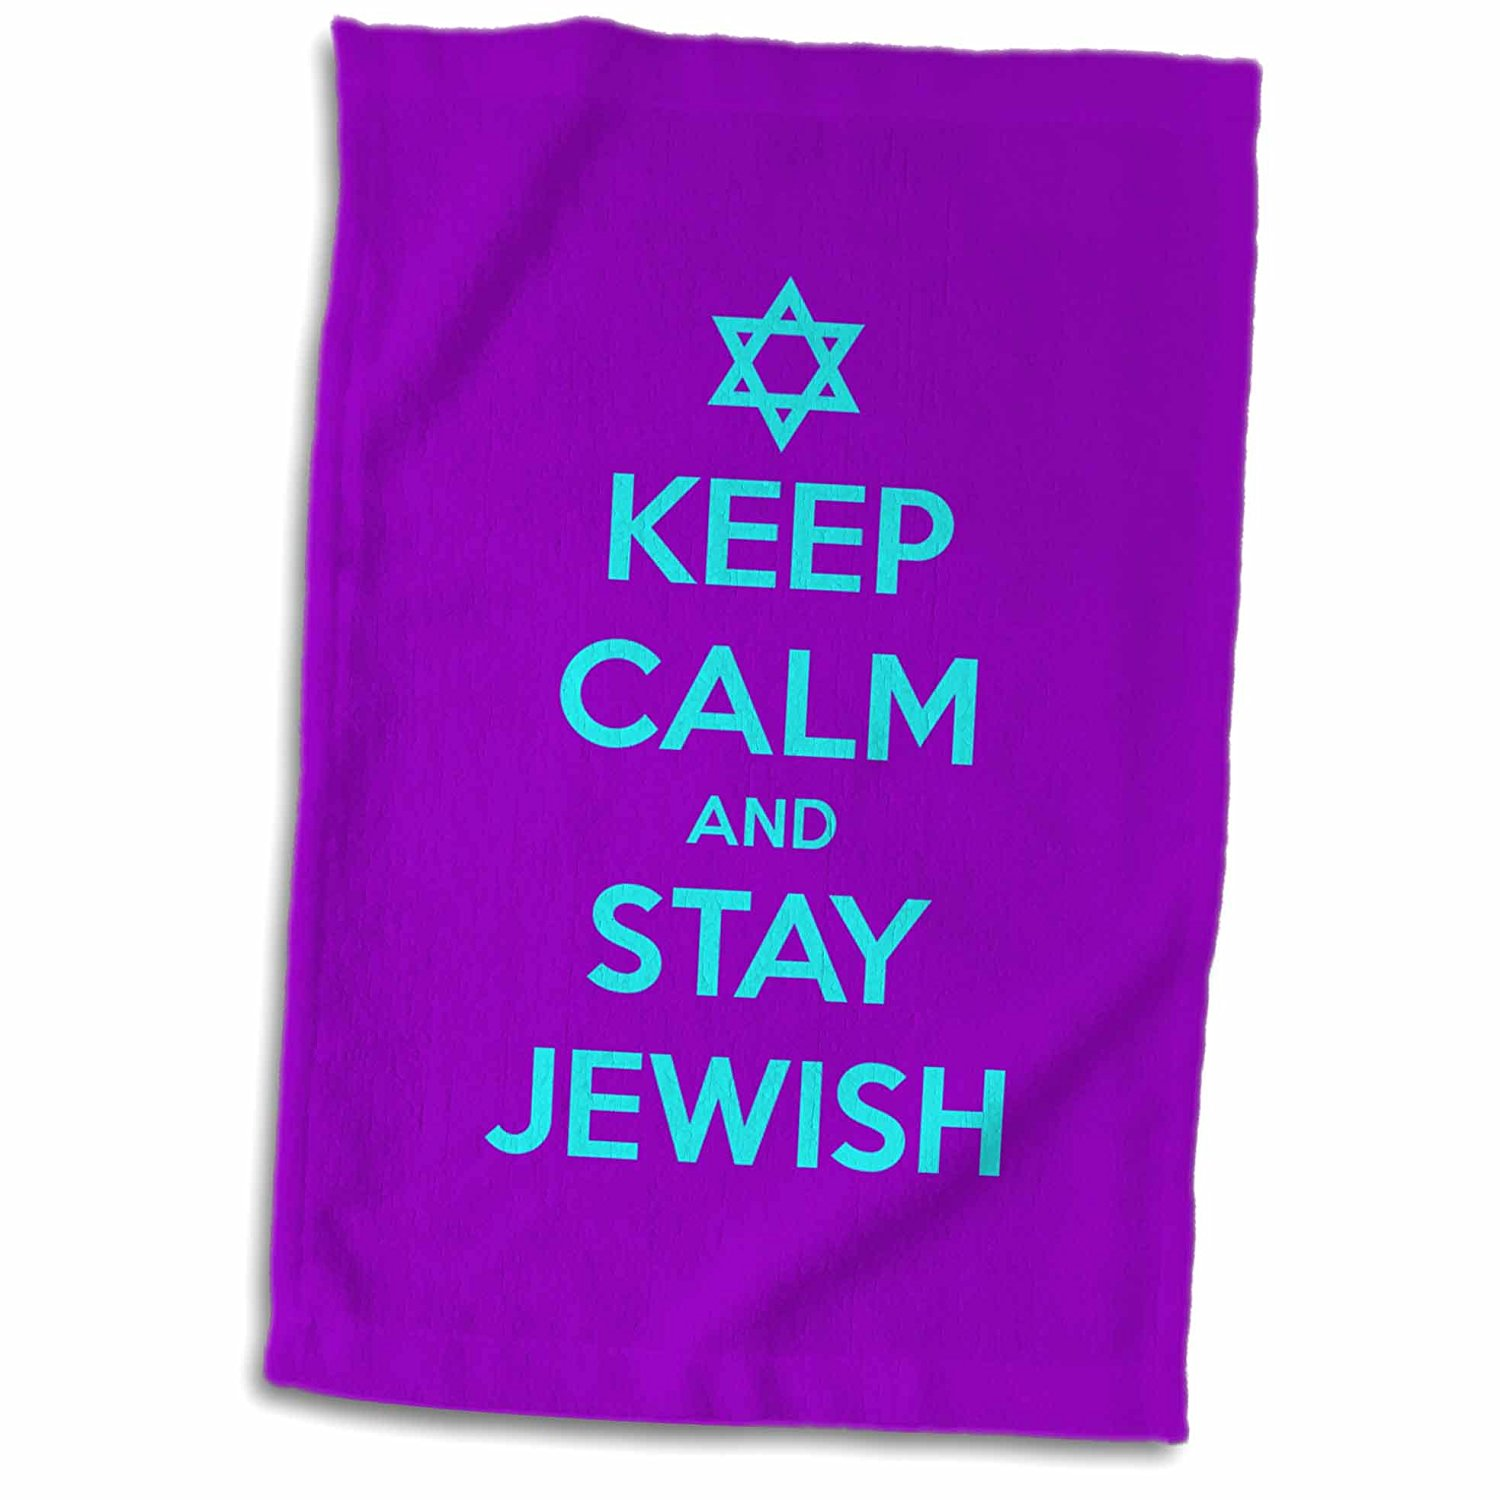 581554d5e EvaDane - Funny Quotes - Keep calm and stay Jewish - 11x17 Towel  (twl_163813_1)